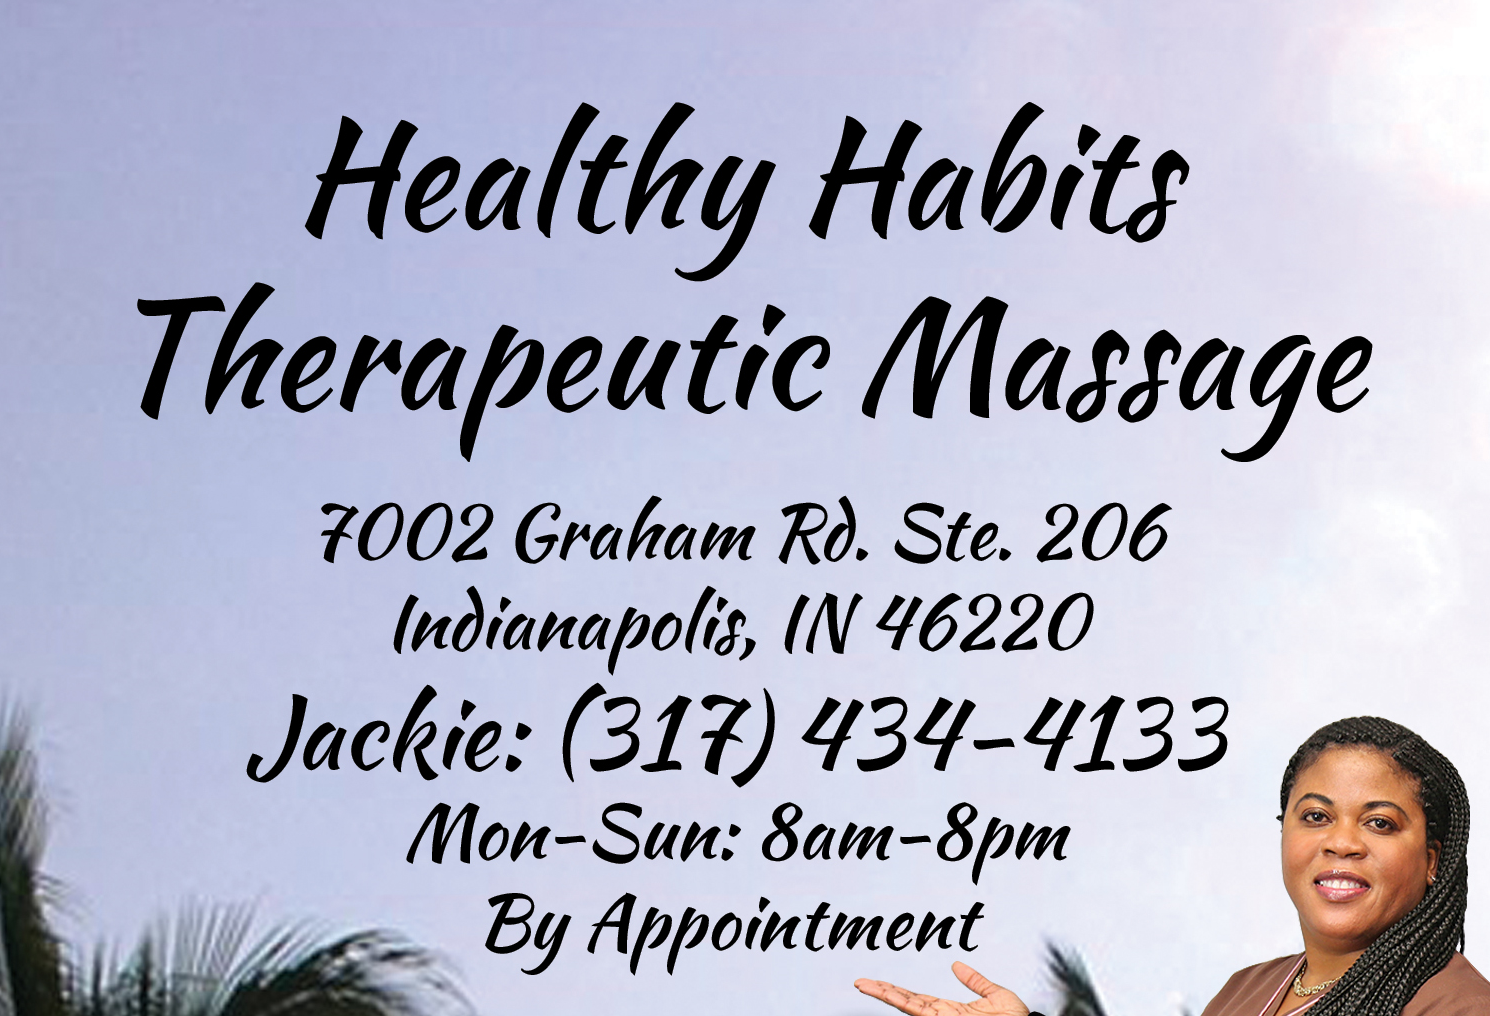 Healthy Habits Therapeutic Massage